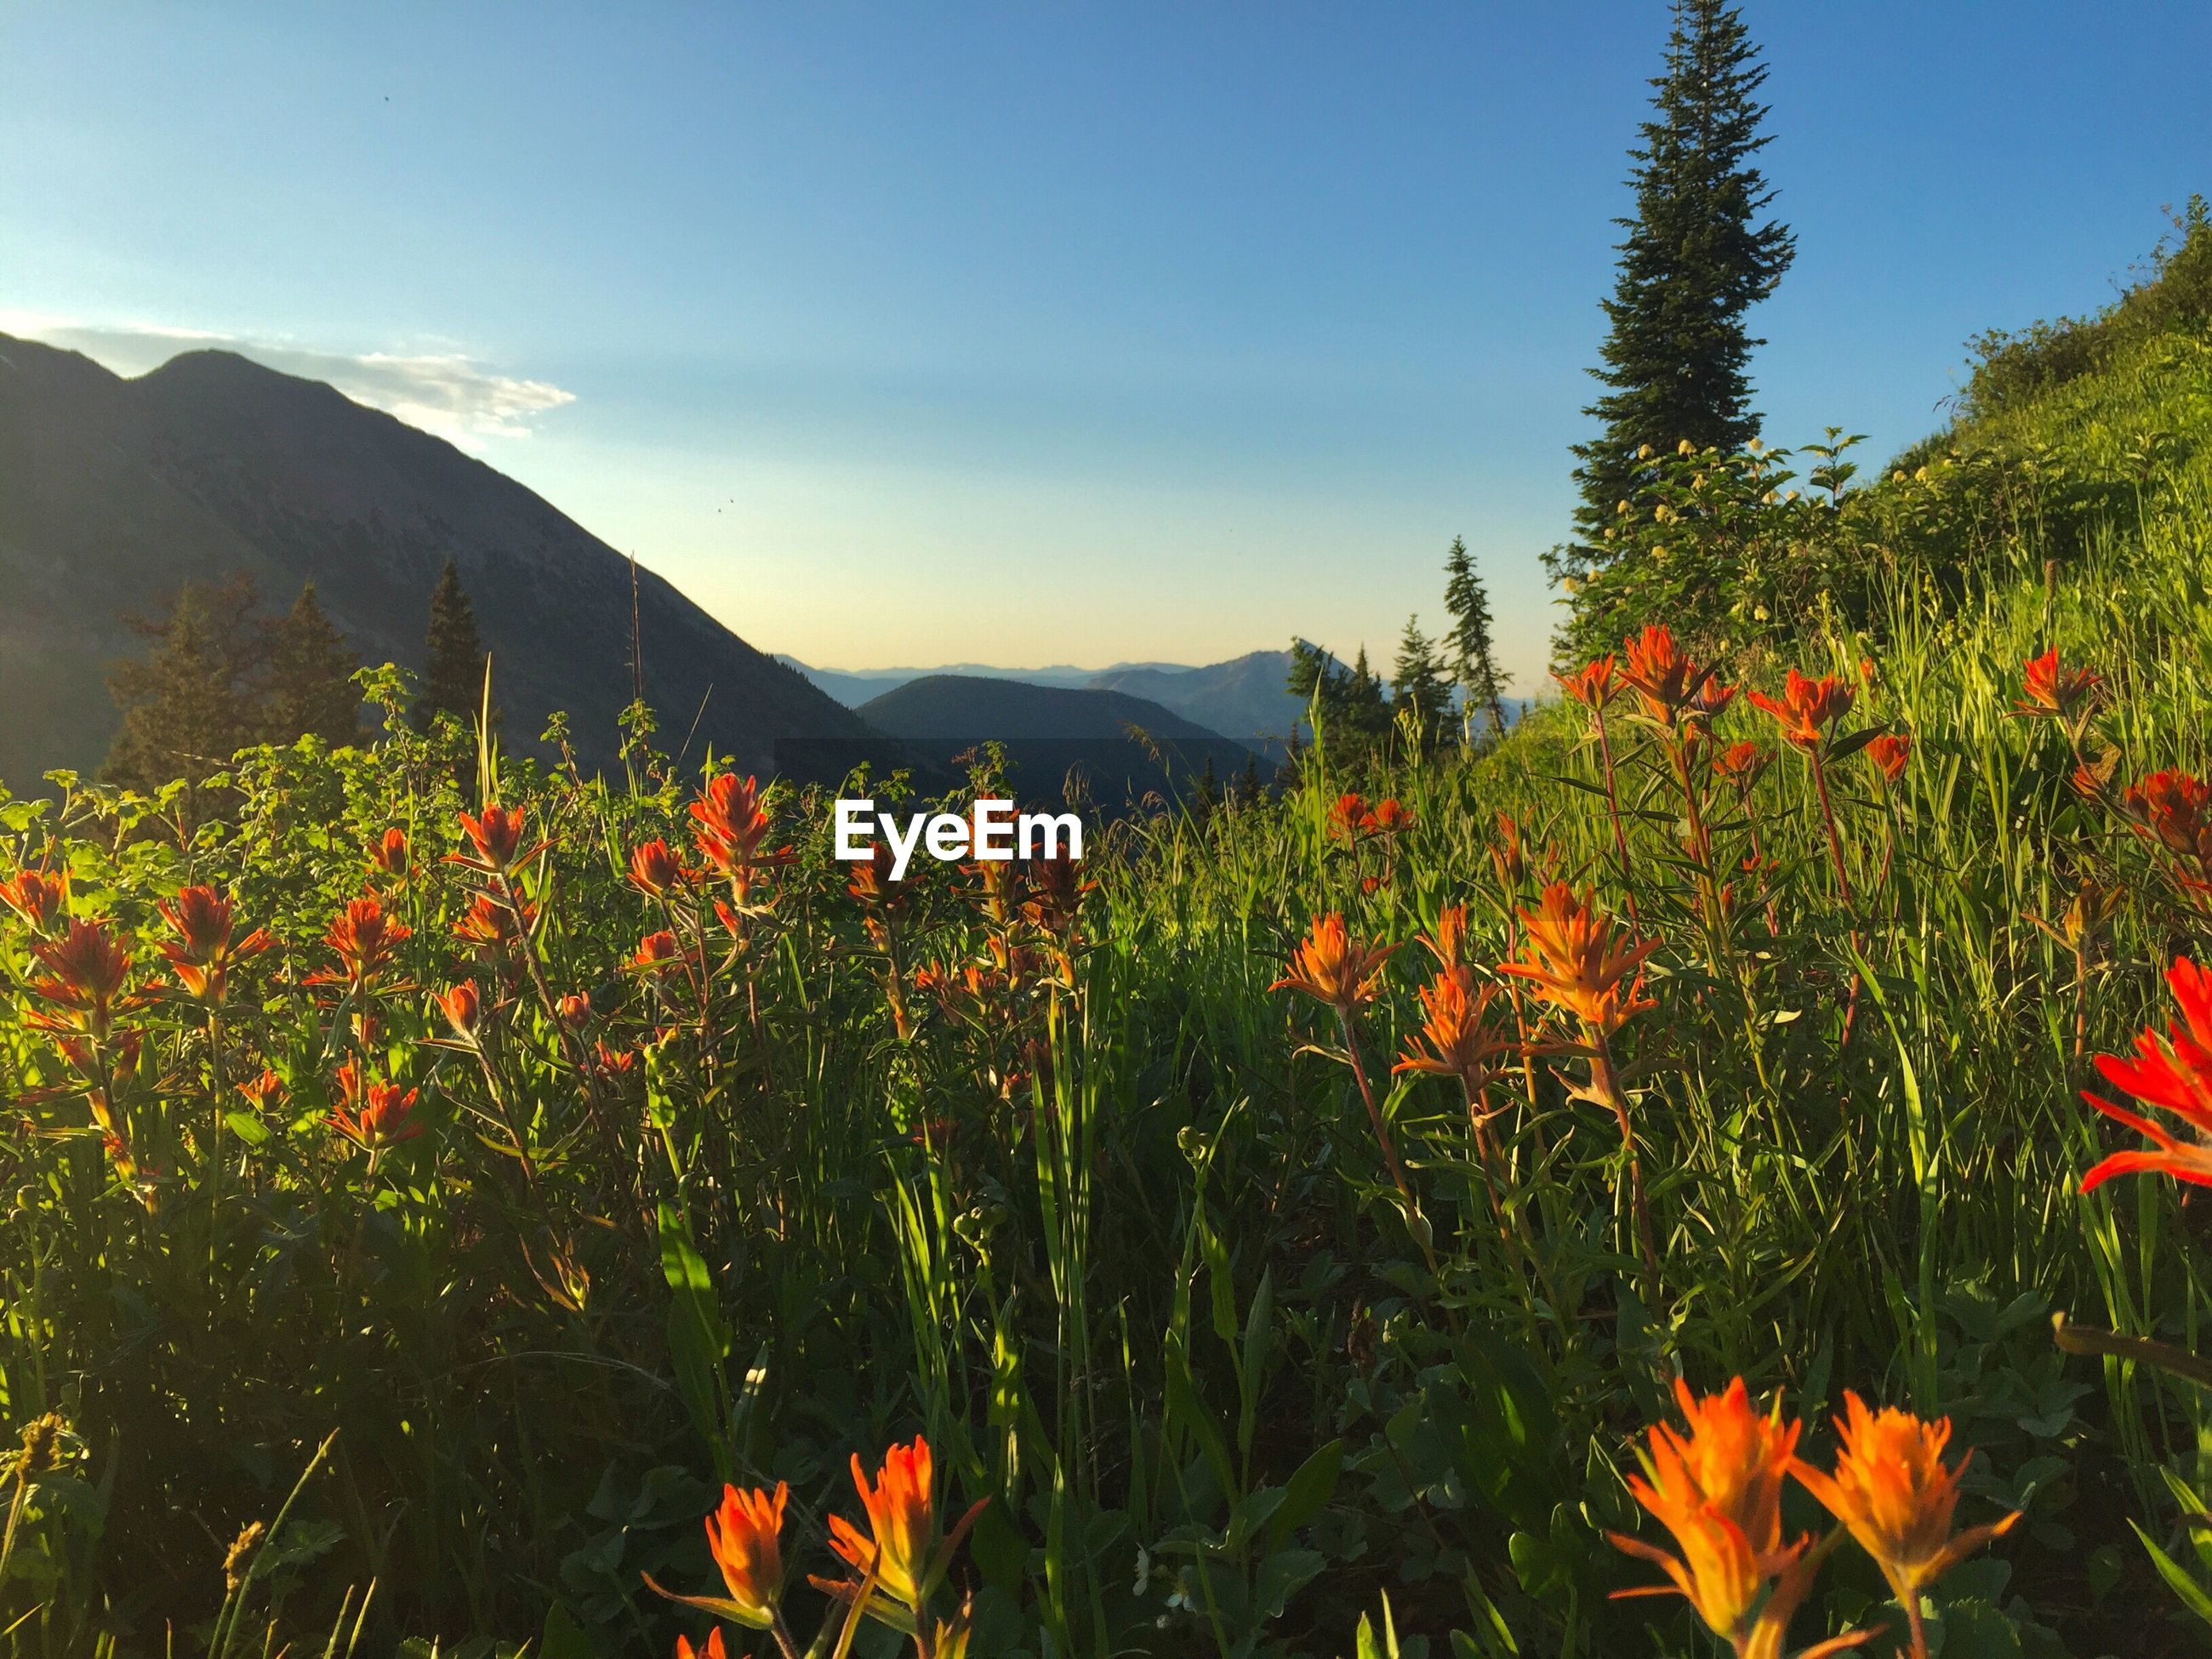 FLOWERS BLOOMING AGAINST MOUNTAINS